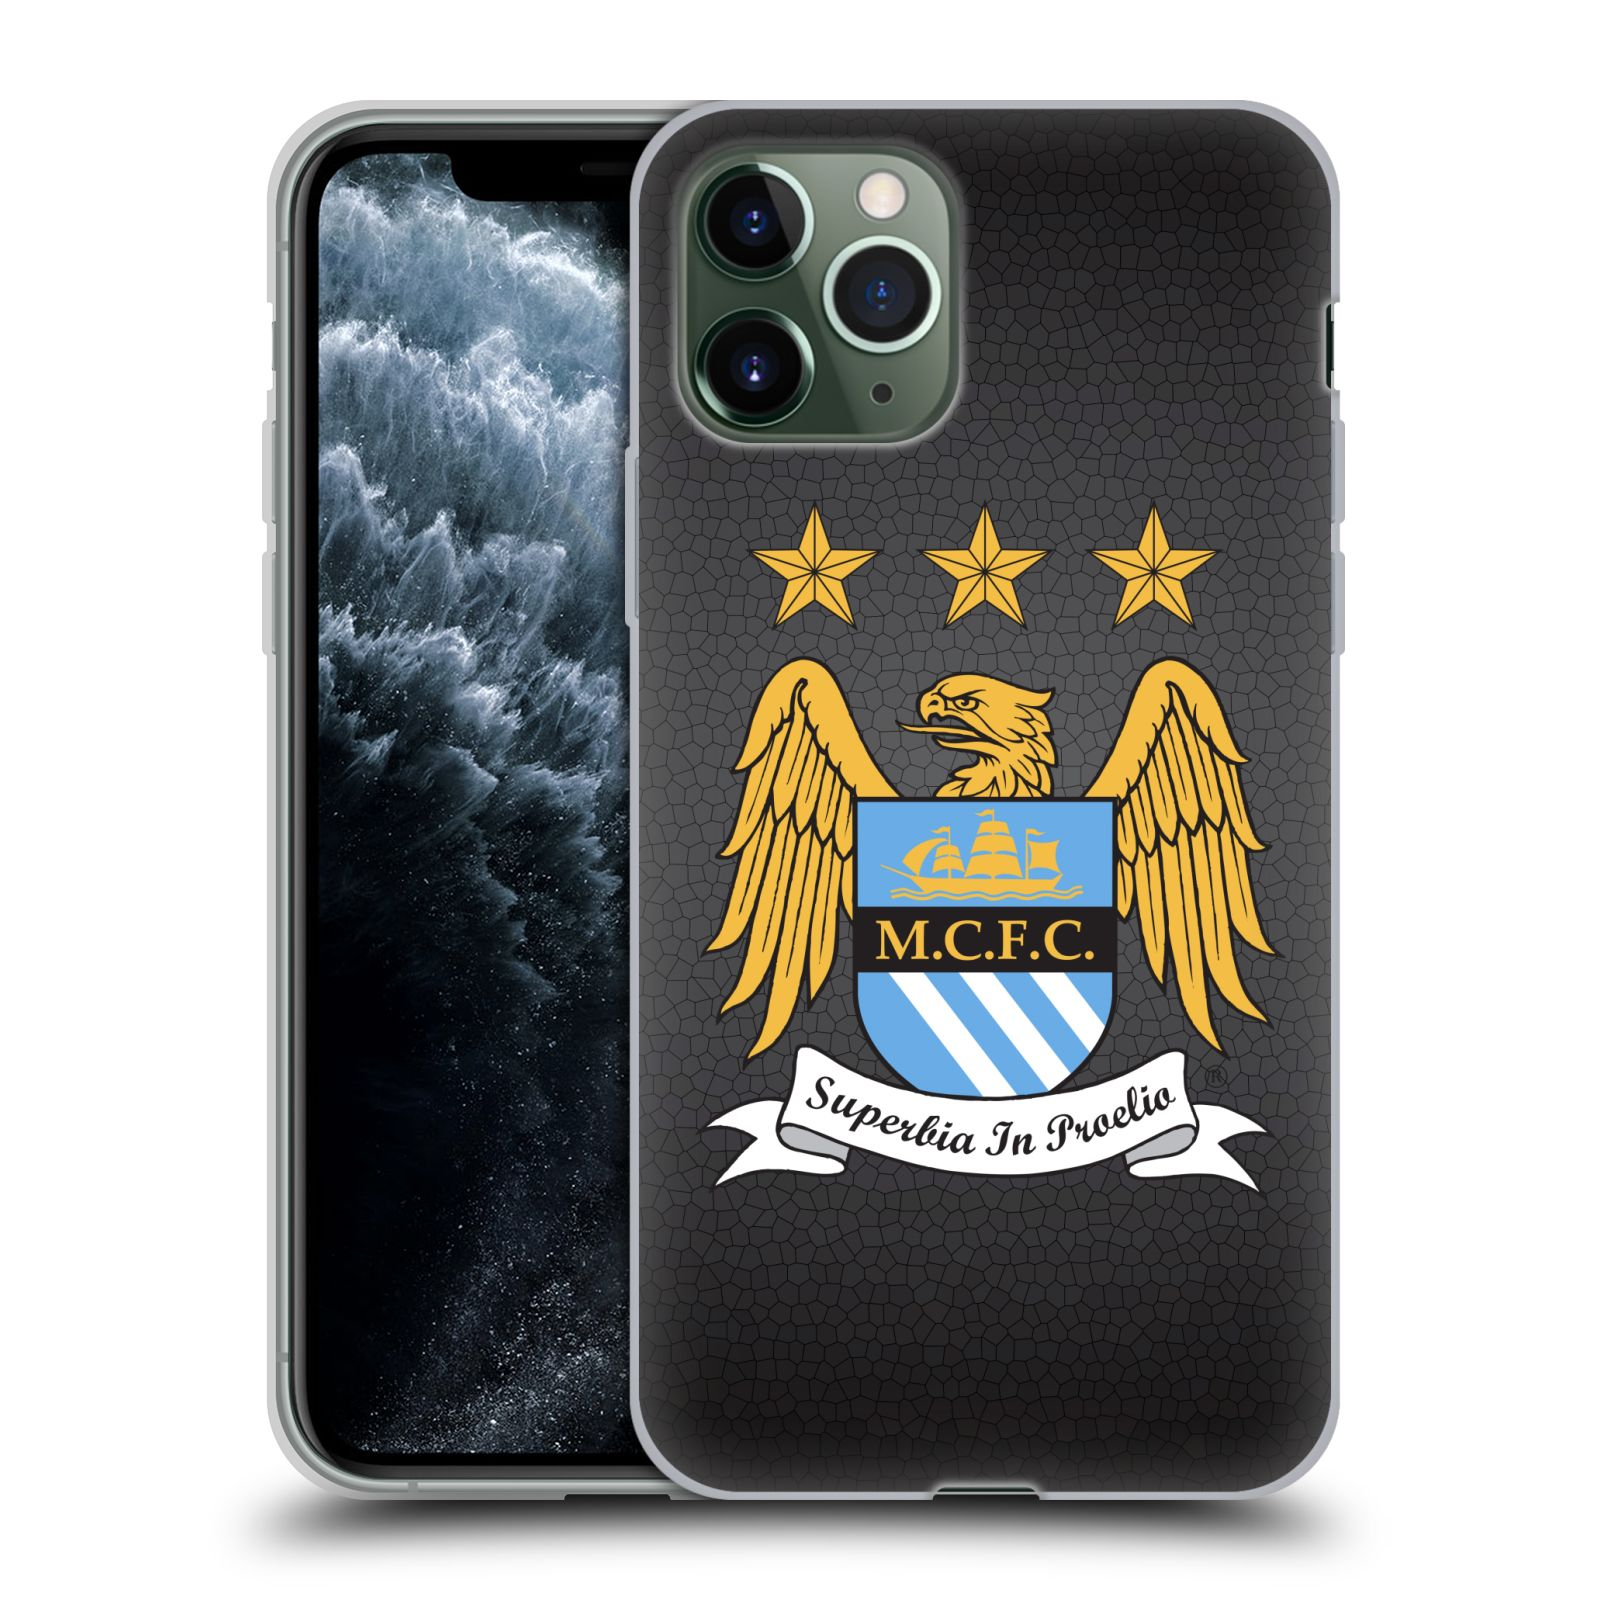 gumový obal iphone | Silikonové pouzdro na mobil Apple iPhone 11 Pro - Head Case - Manchester City FC - Superbia In Proelio